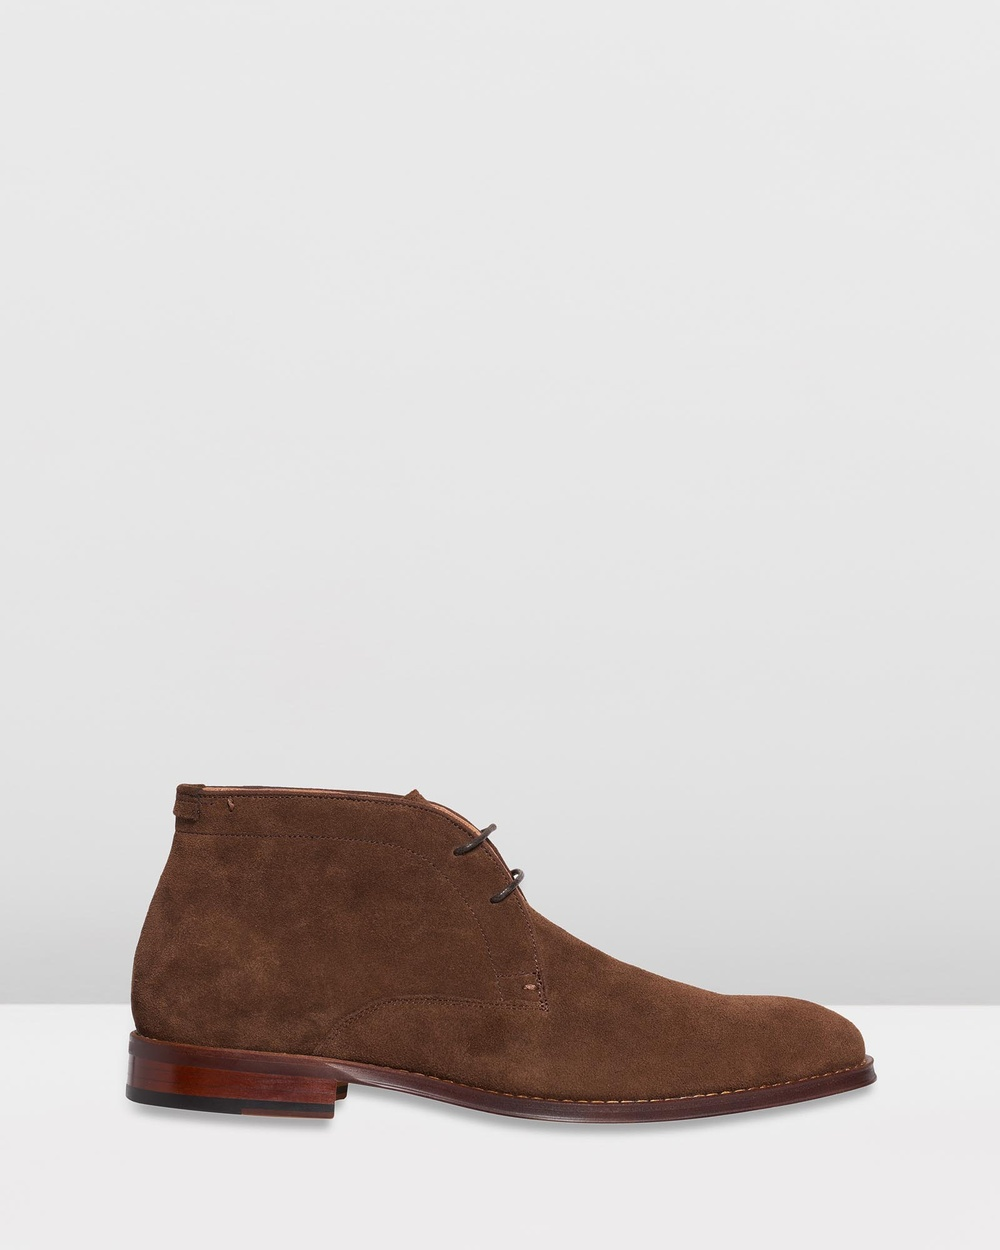 3 Wise Men The Marley Boots Brown